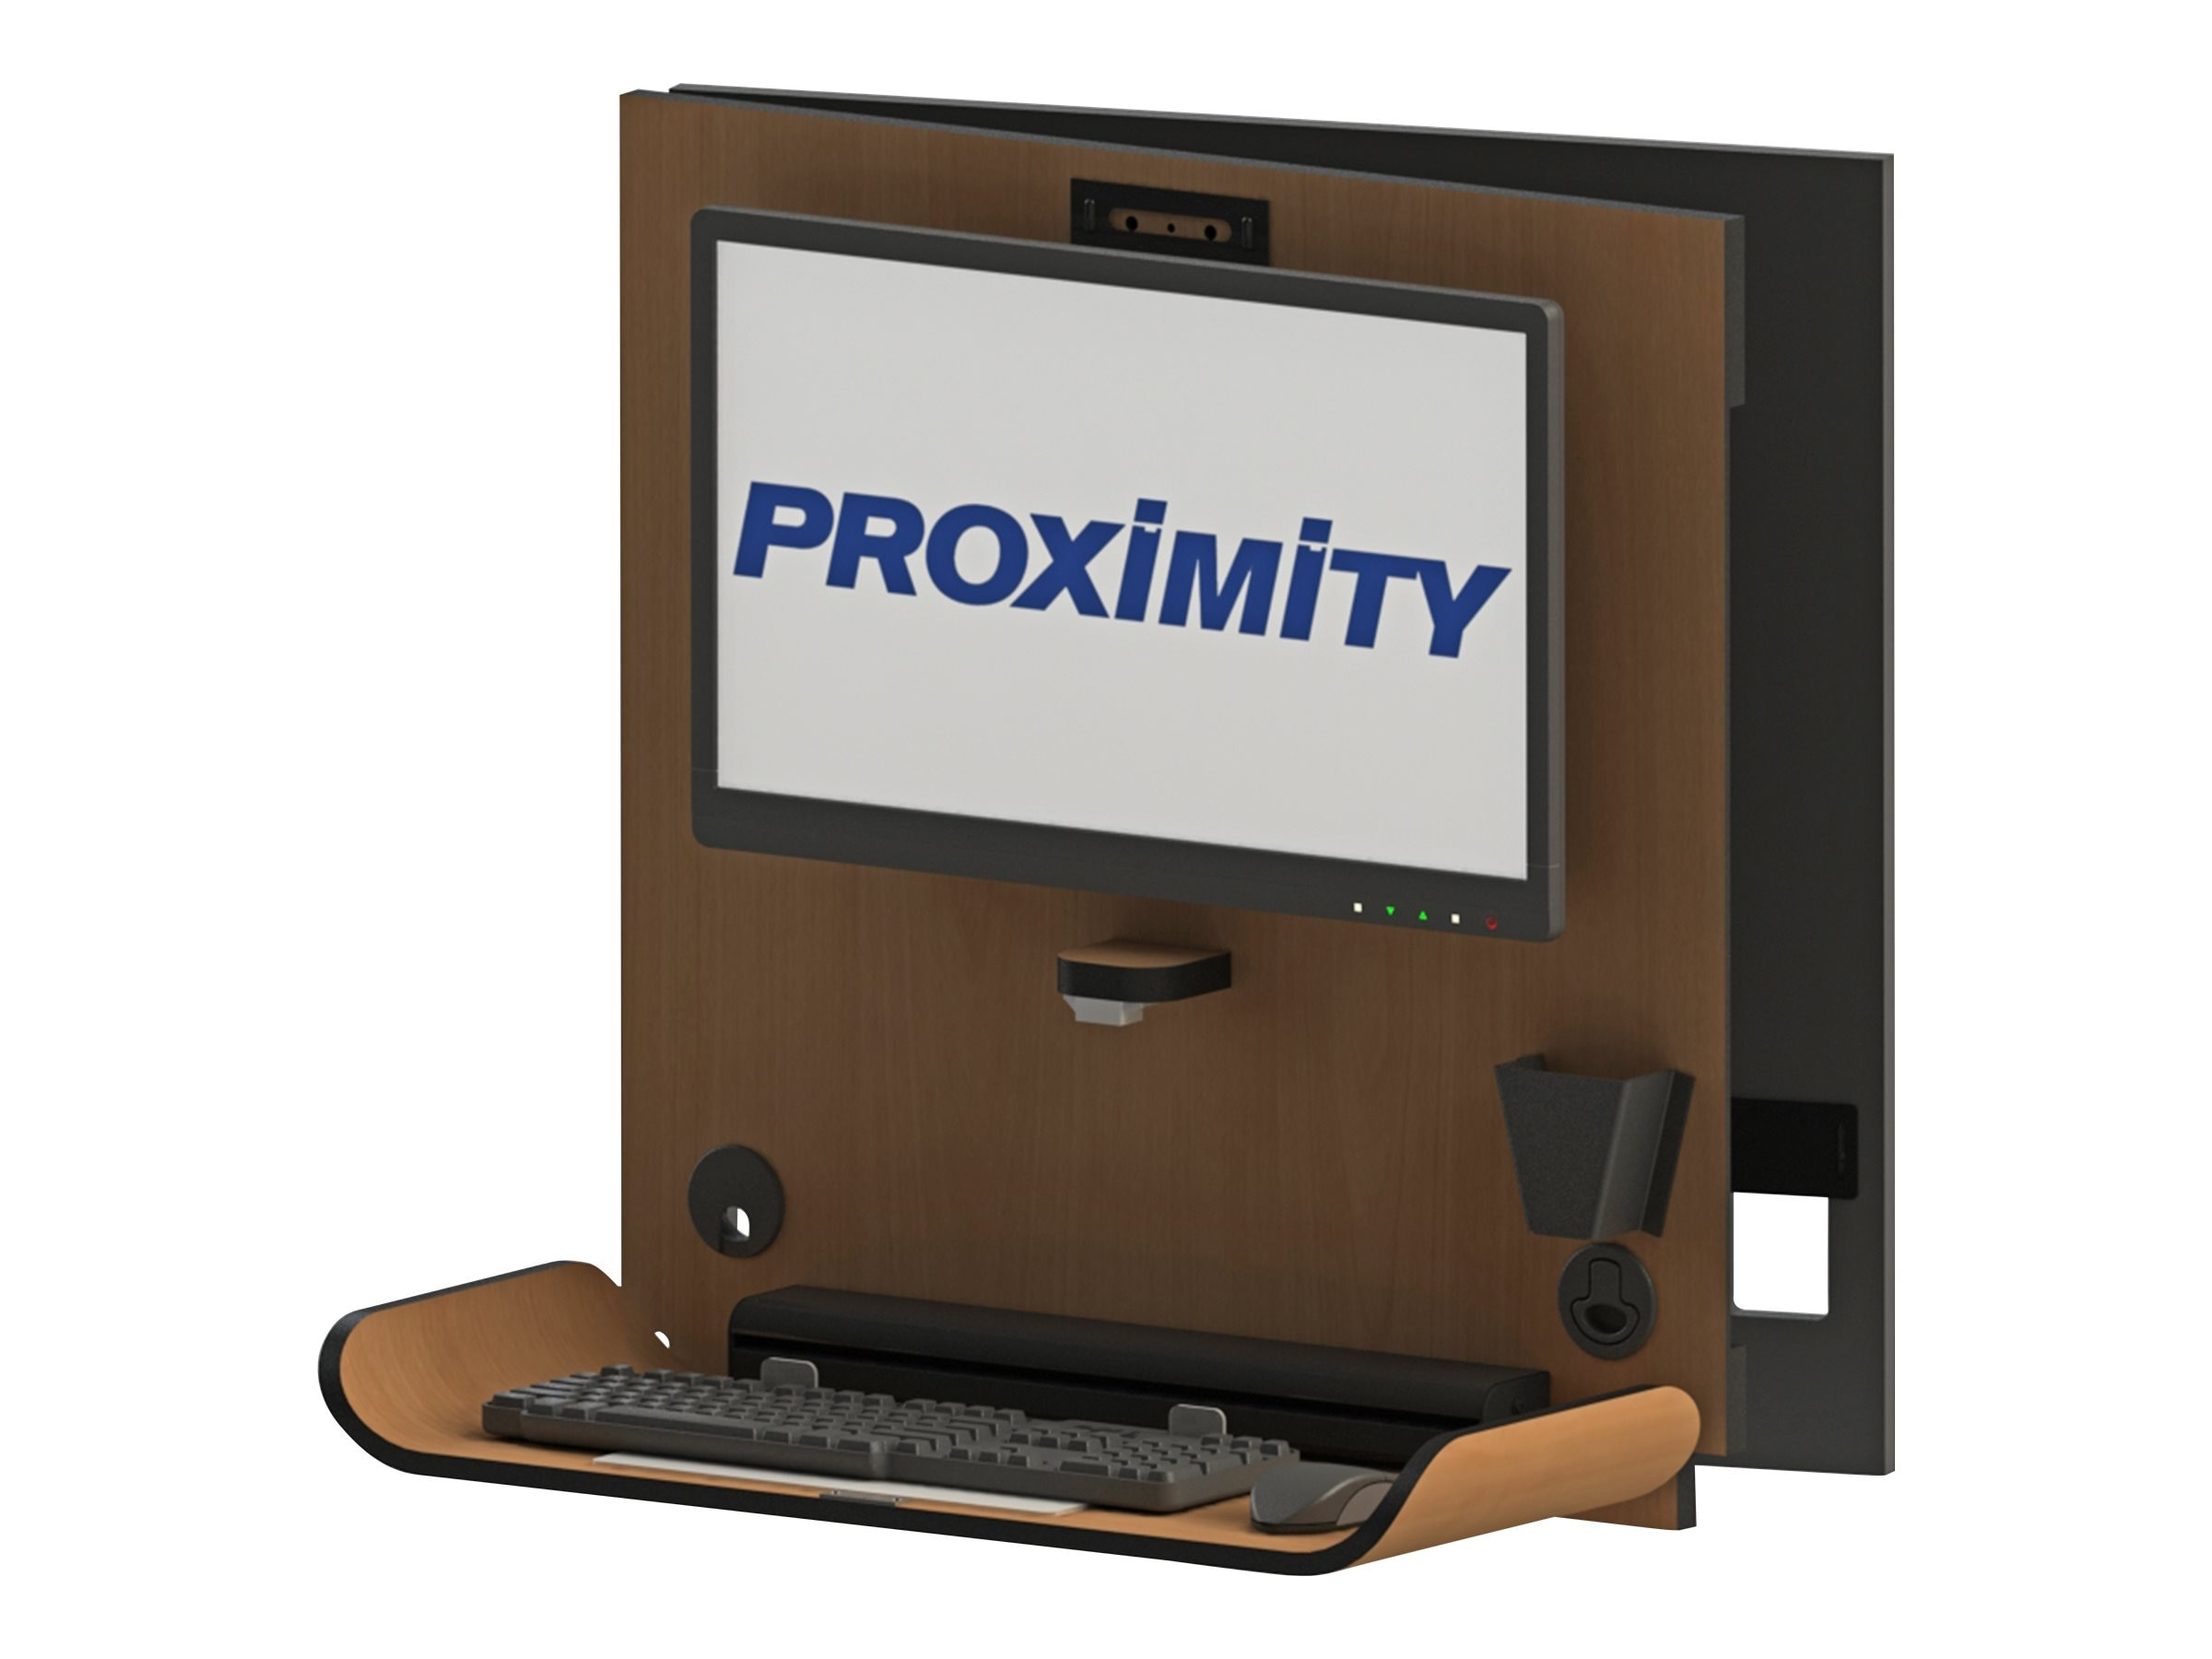 Proximity Classic CX1 Wall Mounted Computer Workstation with 90 Degree Left Swivel, Fonthill Pear, CX1-6022-10745